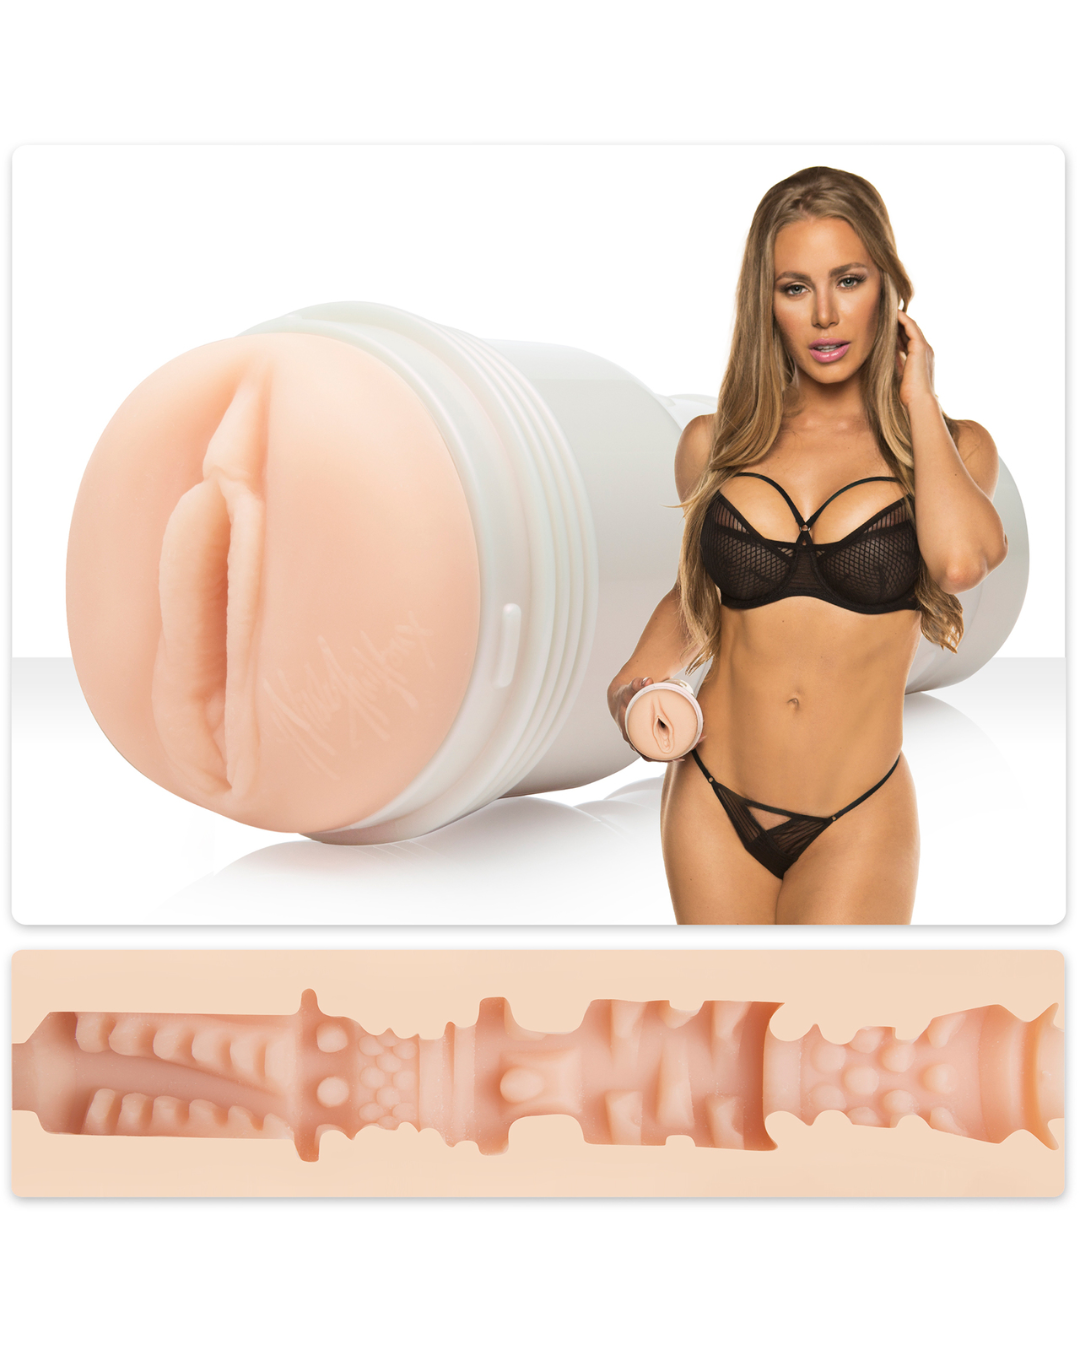 Fleshlight Girls Nicole Aniston - Fit Texture Vagina